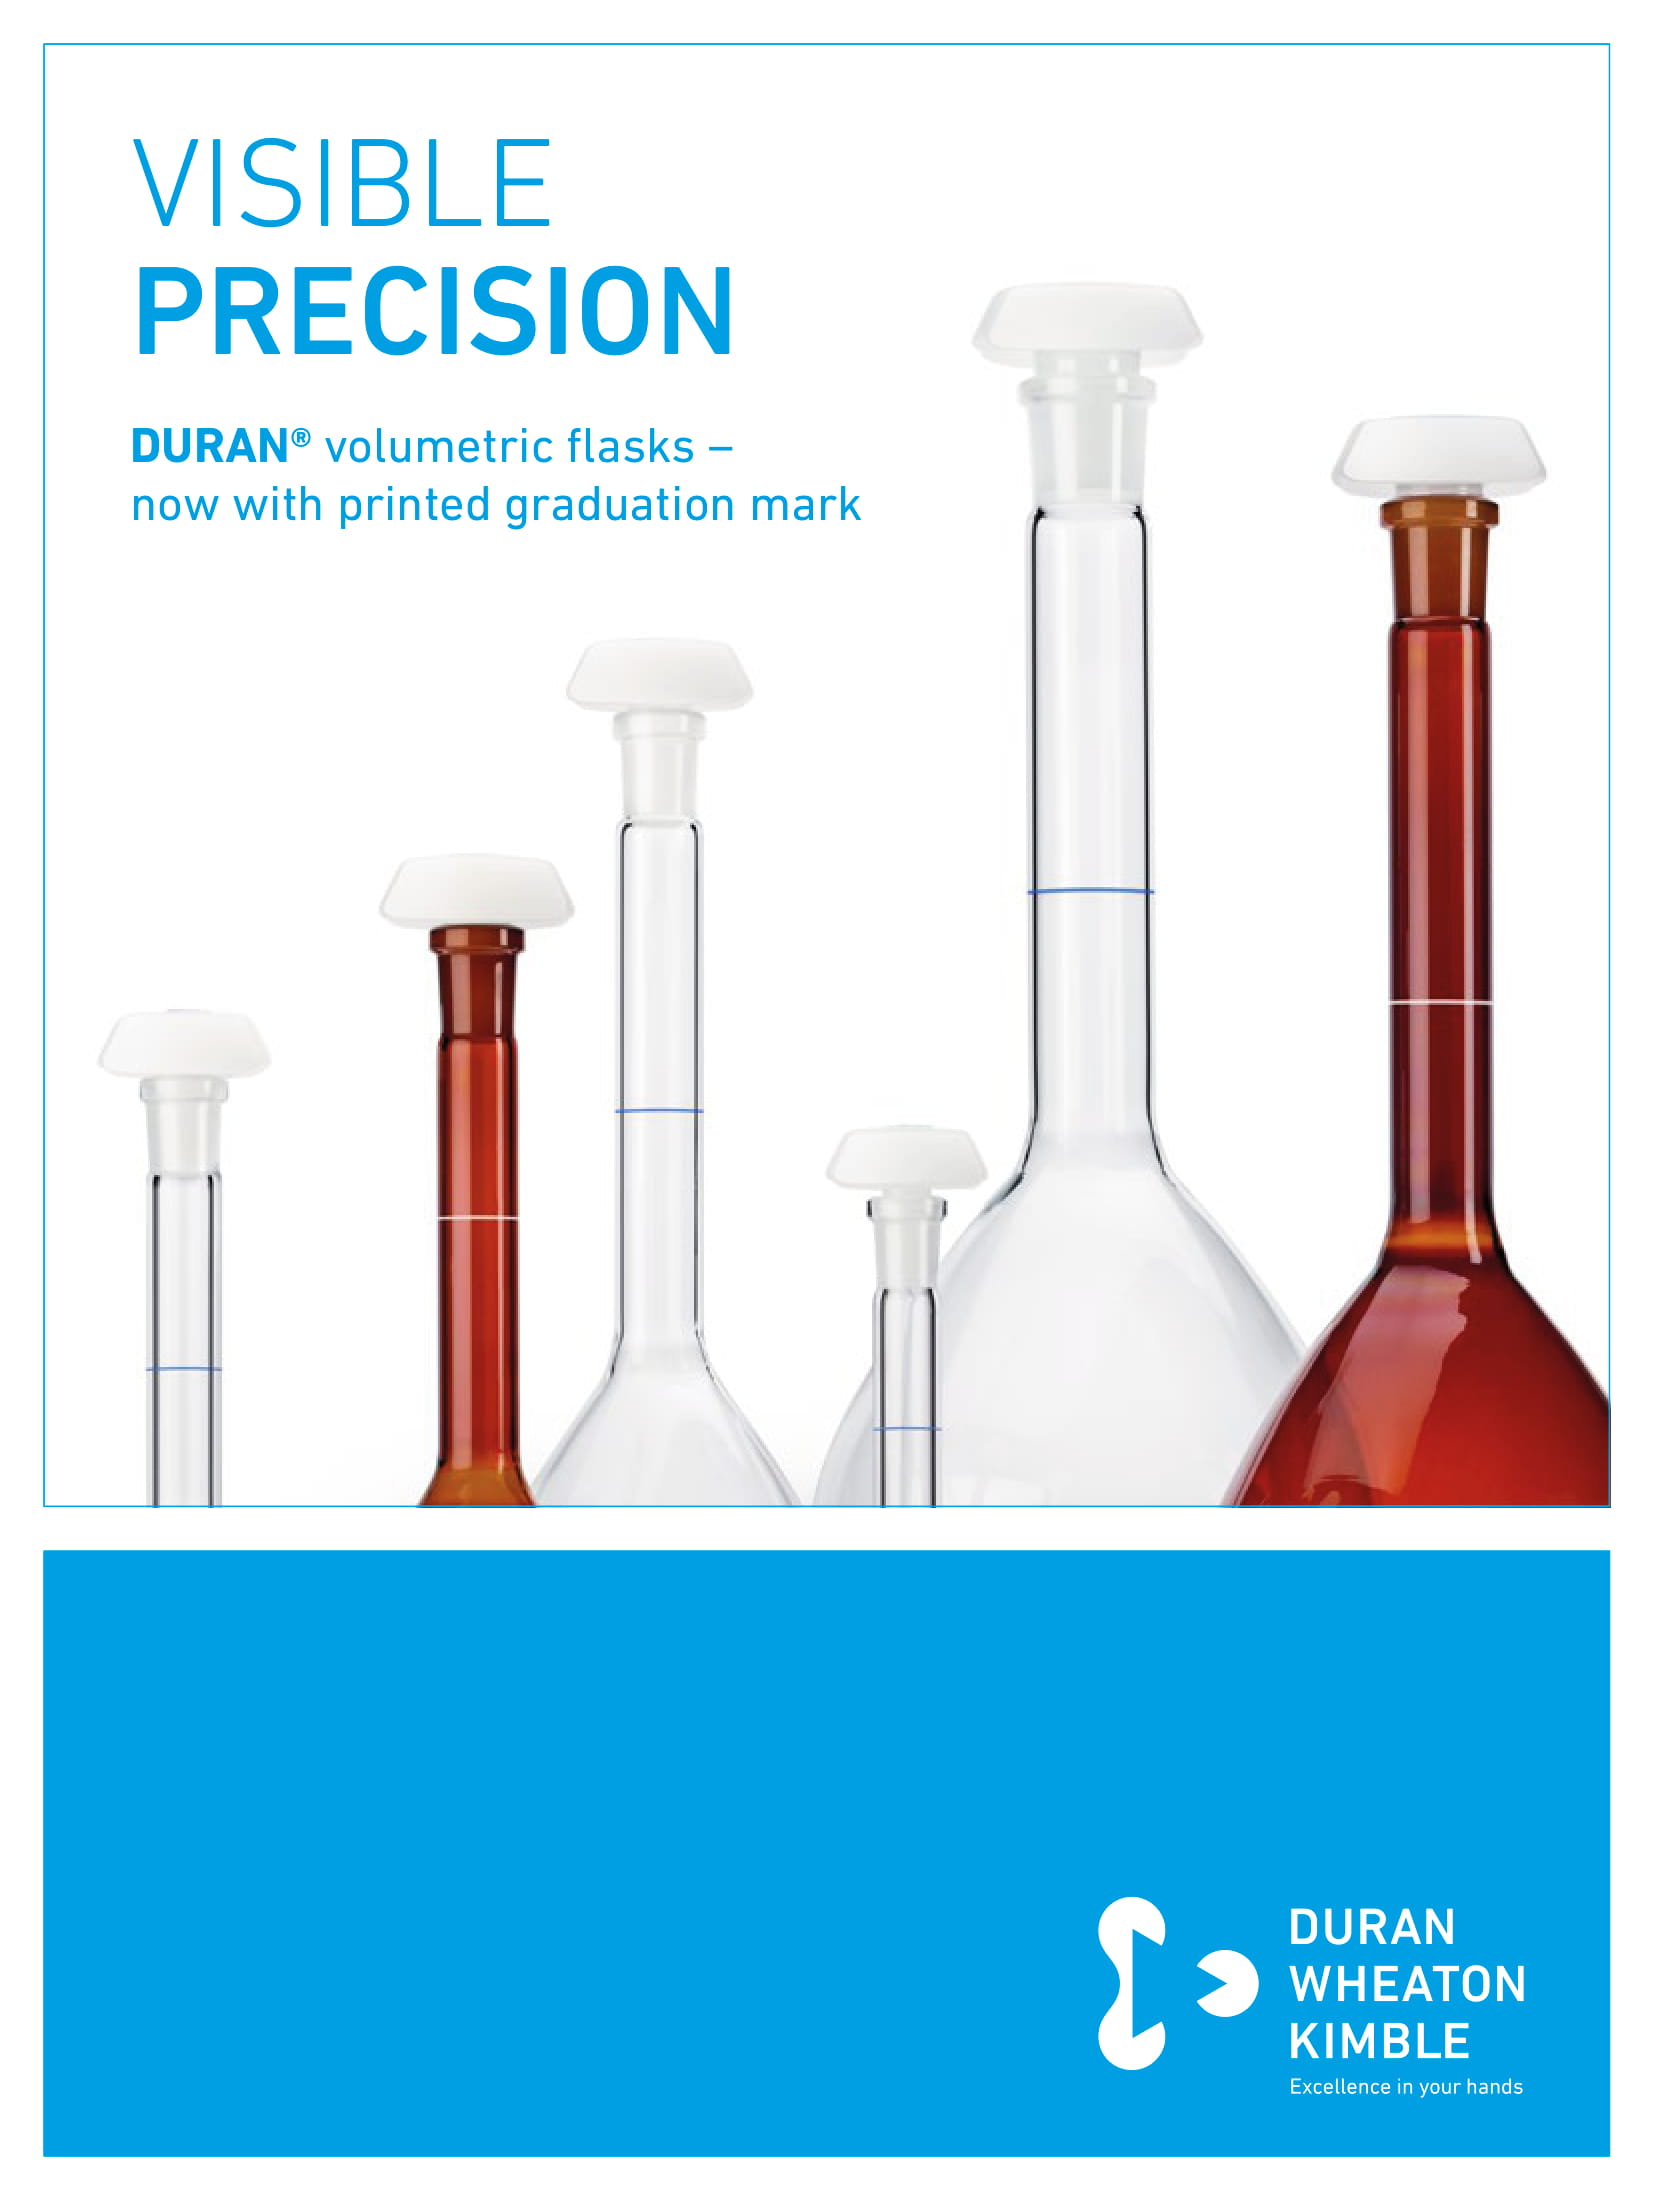 DURAN® Volumetric Flasks with Printed Graduation Mark